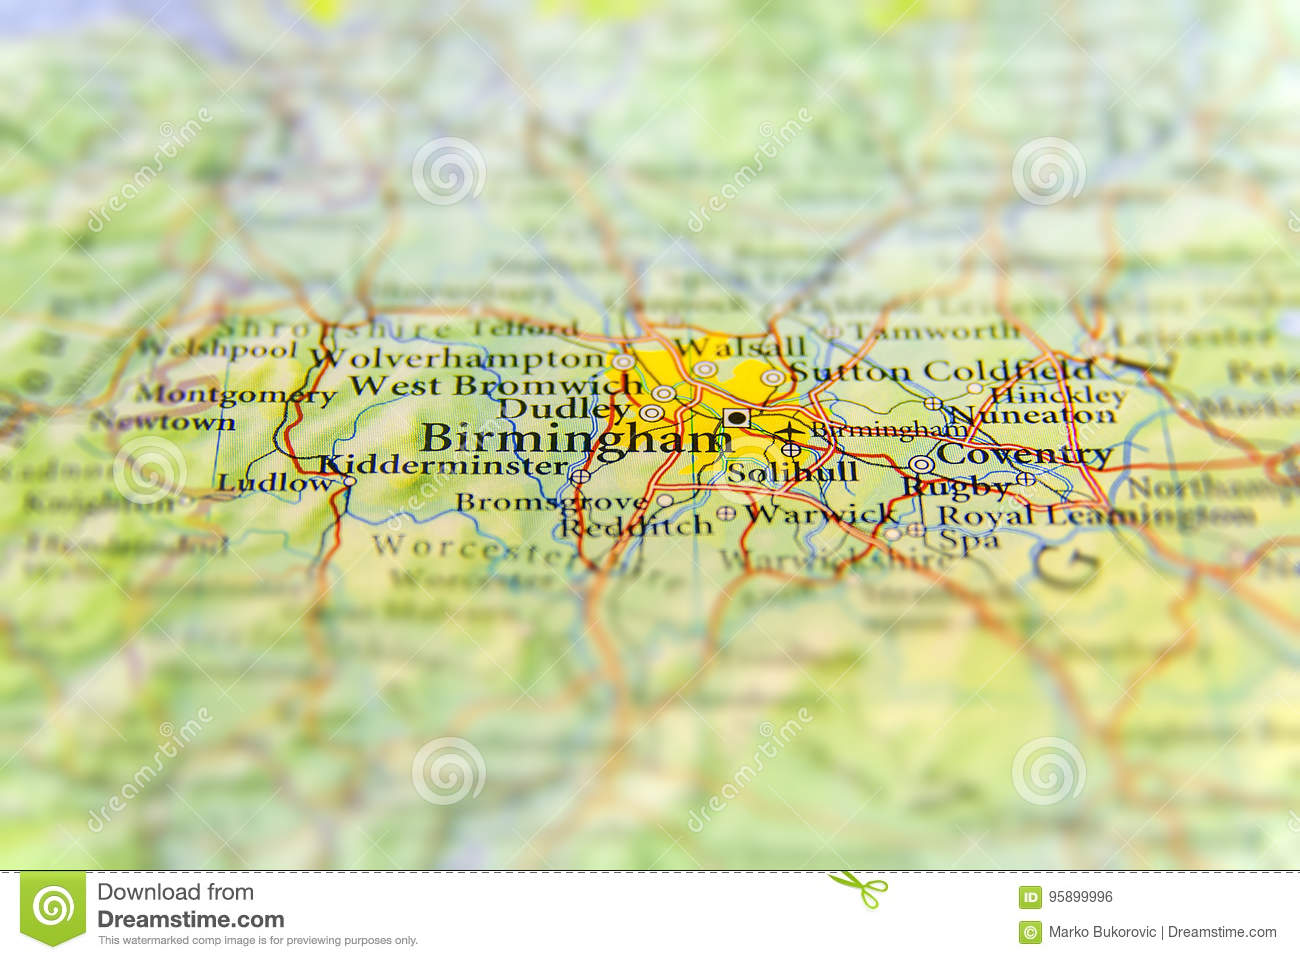 Geographic Map Of England.Geographic Map Of European Country Uk With Birmingham City Stock